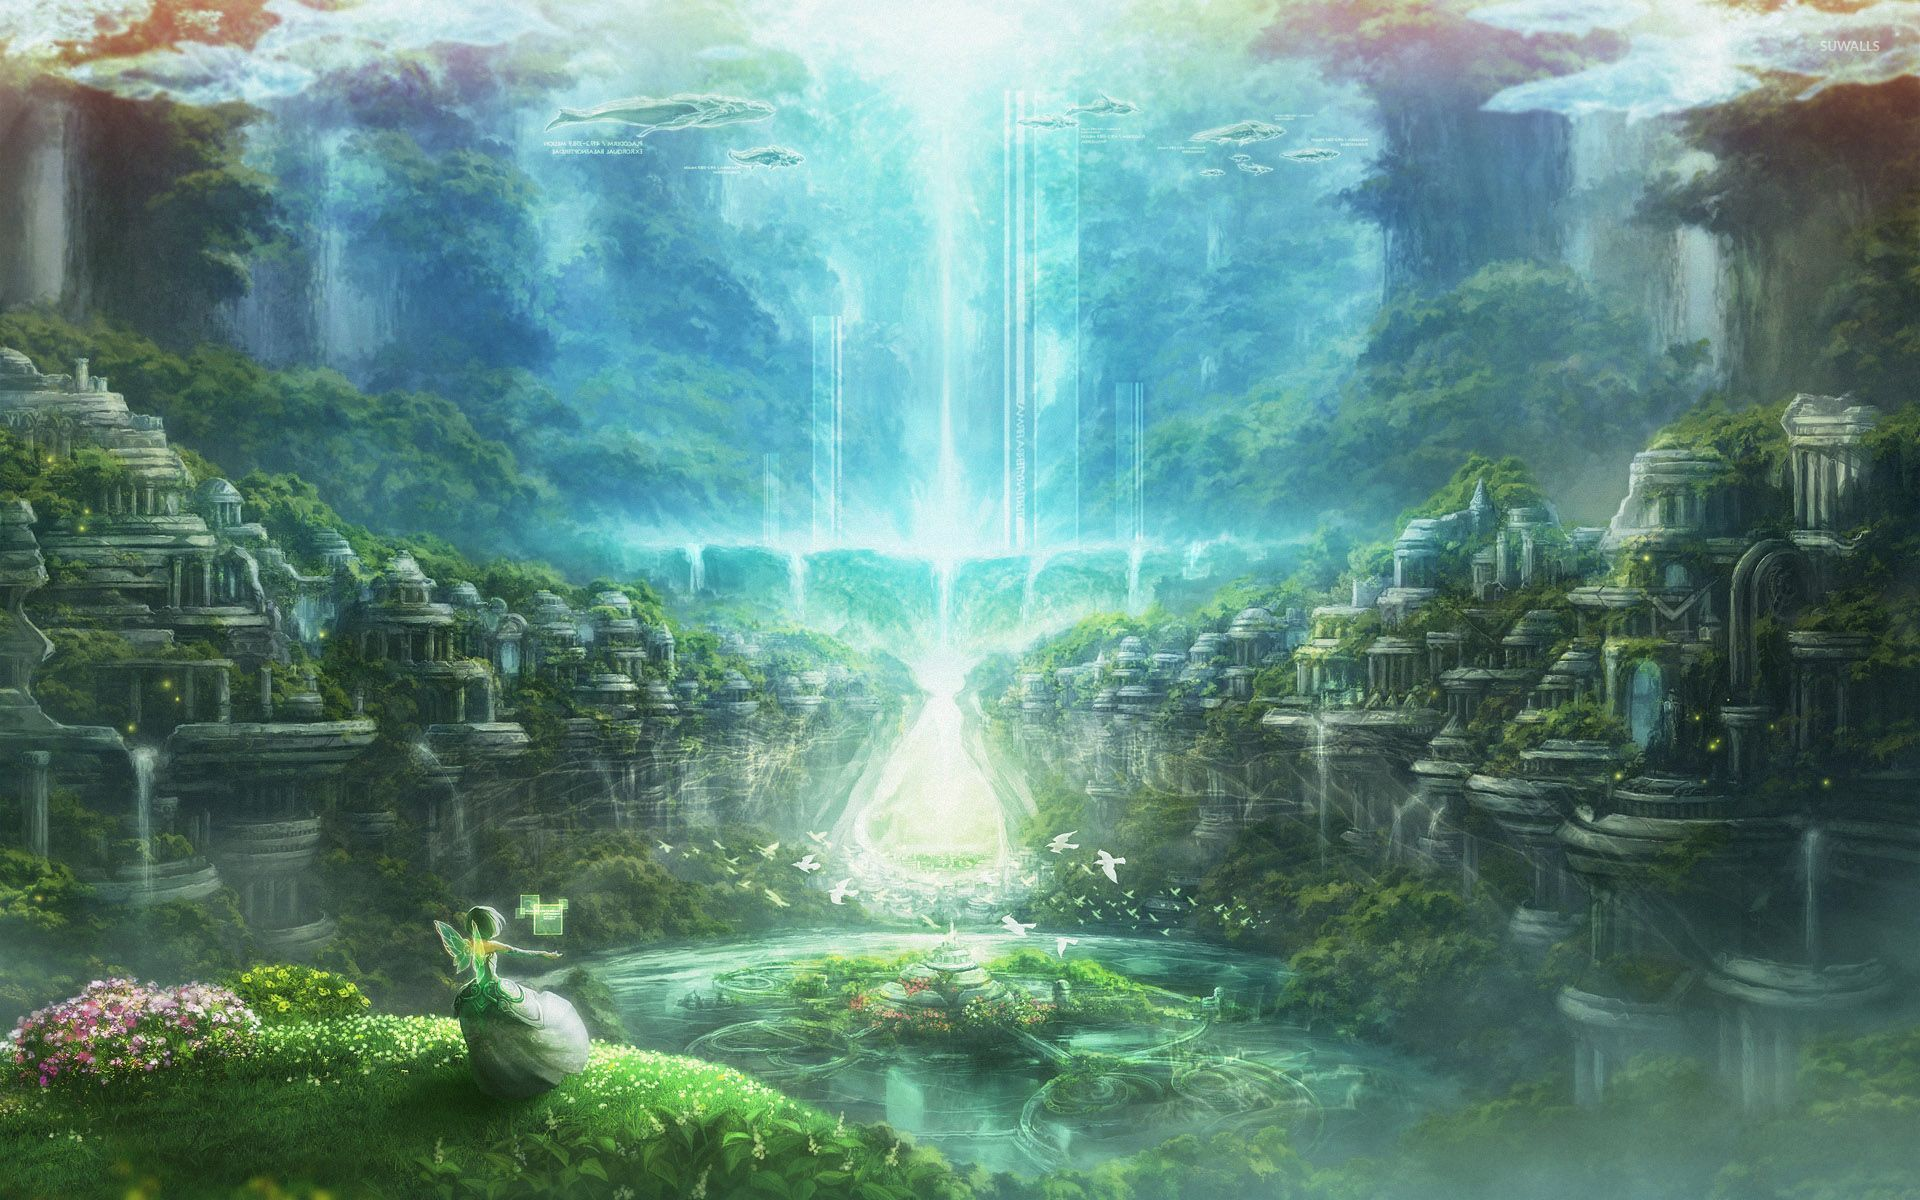 Fairyland wallpaper - Anime wallpapers - #30665